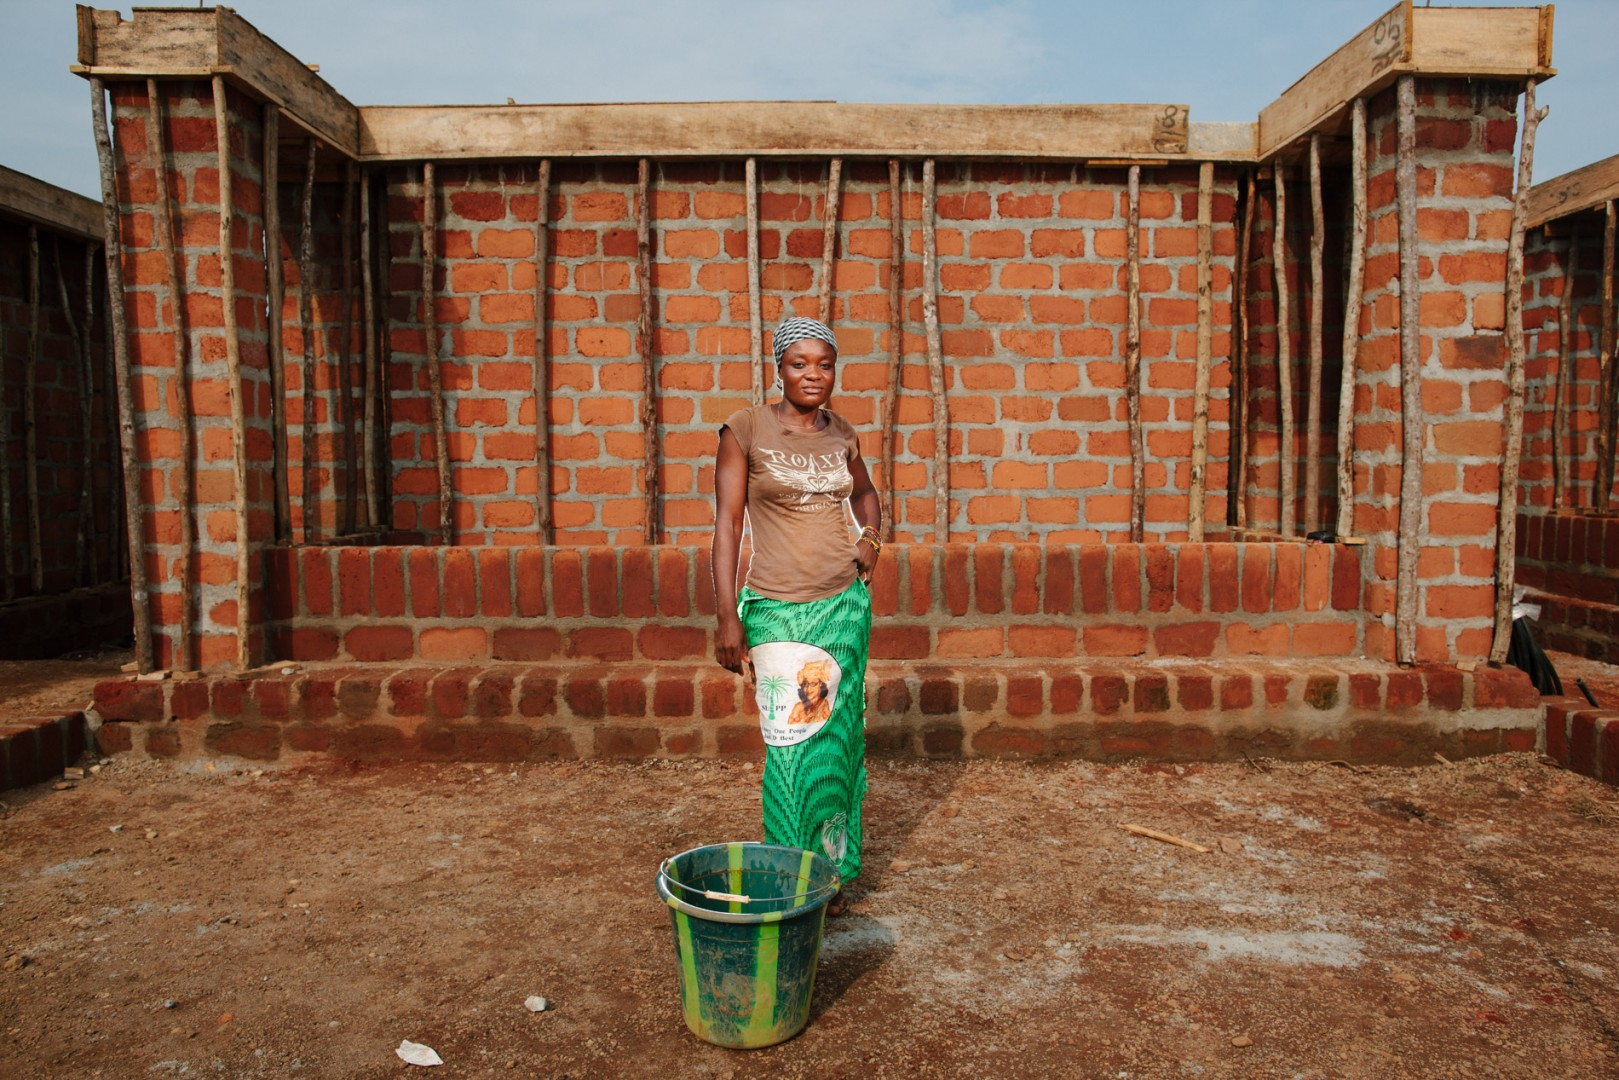 Lucia Sam, brick cleaner. Because the bricks where no being plastered Lucia kept them clean from all the dust and muck of the work.